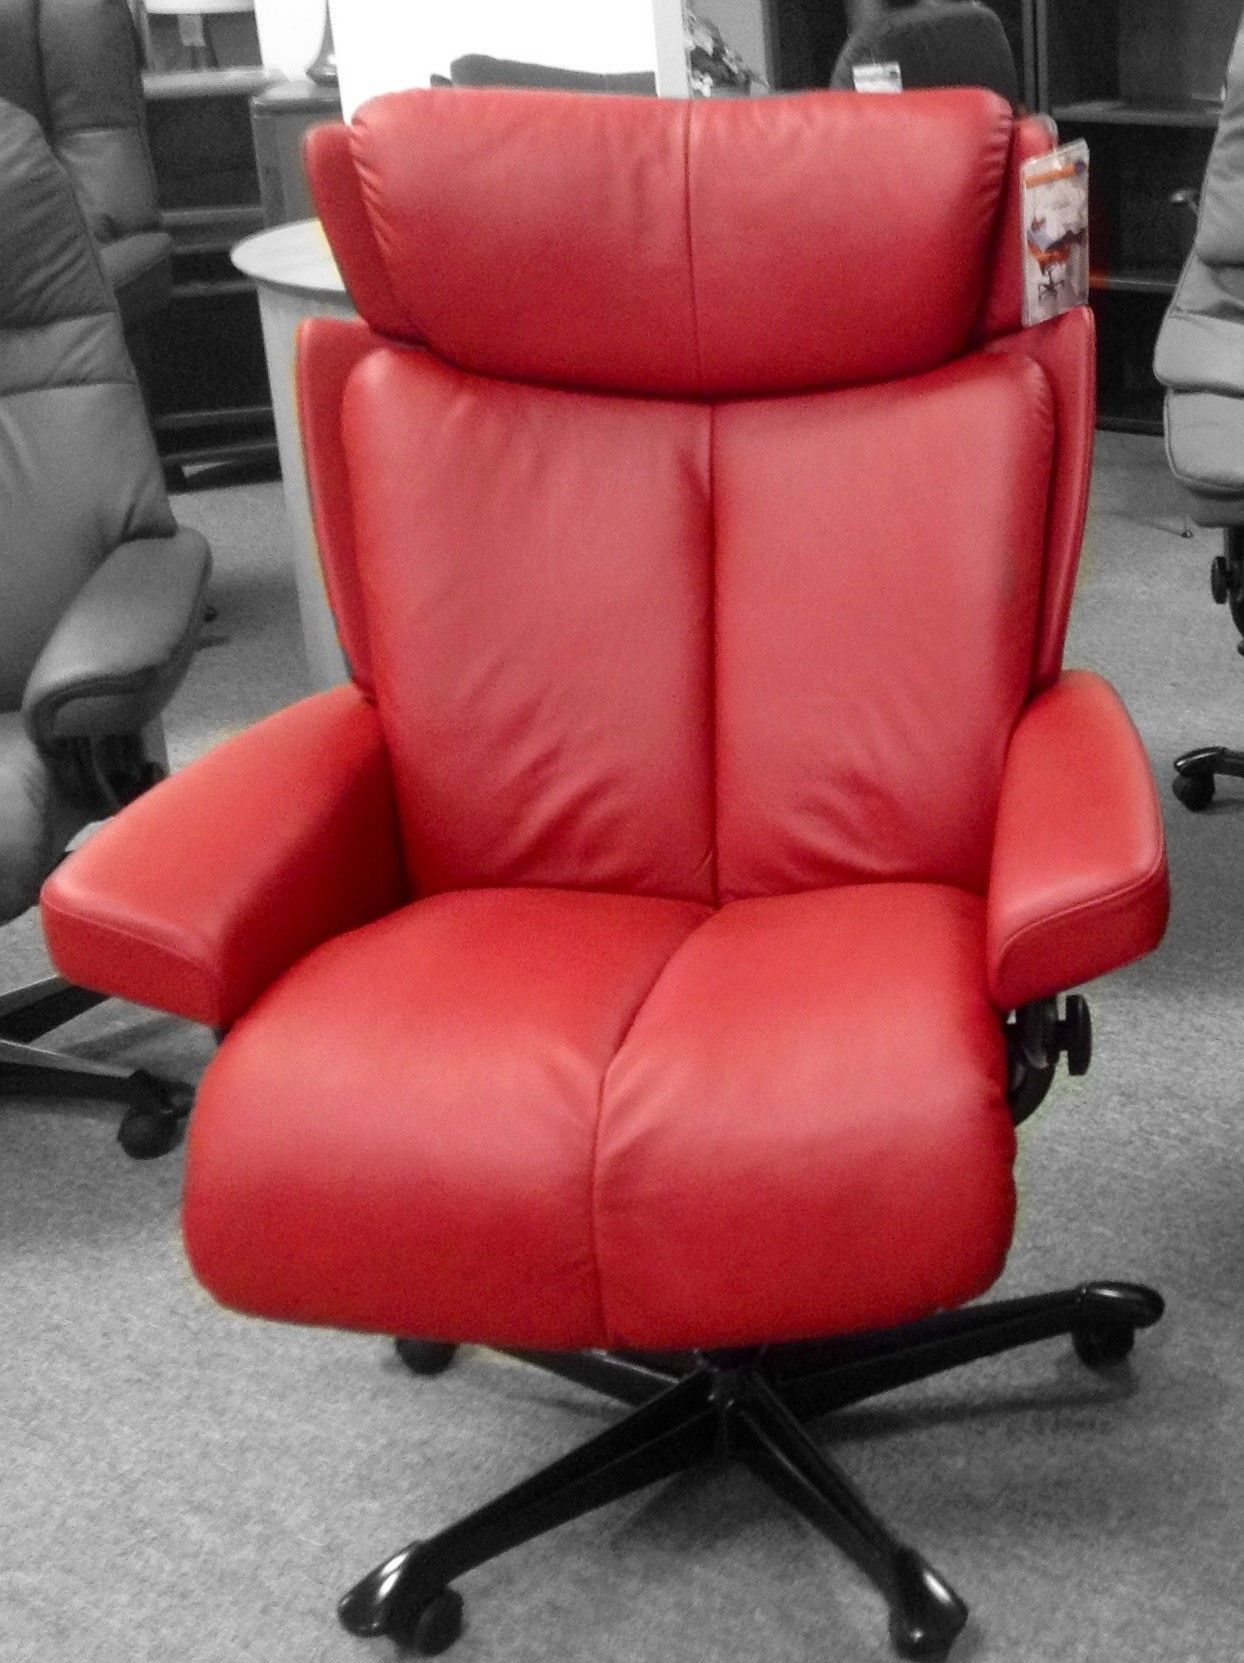 Stressless Office Chair Stressless Magic Office Chair Paloma Cherry Available At